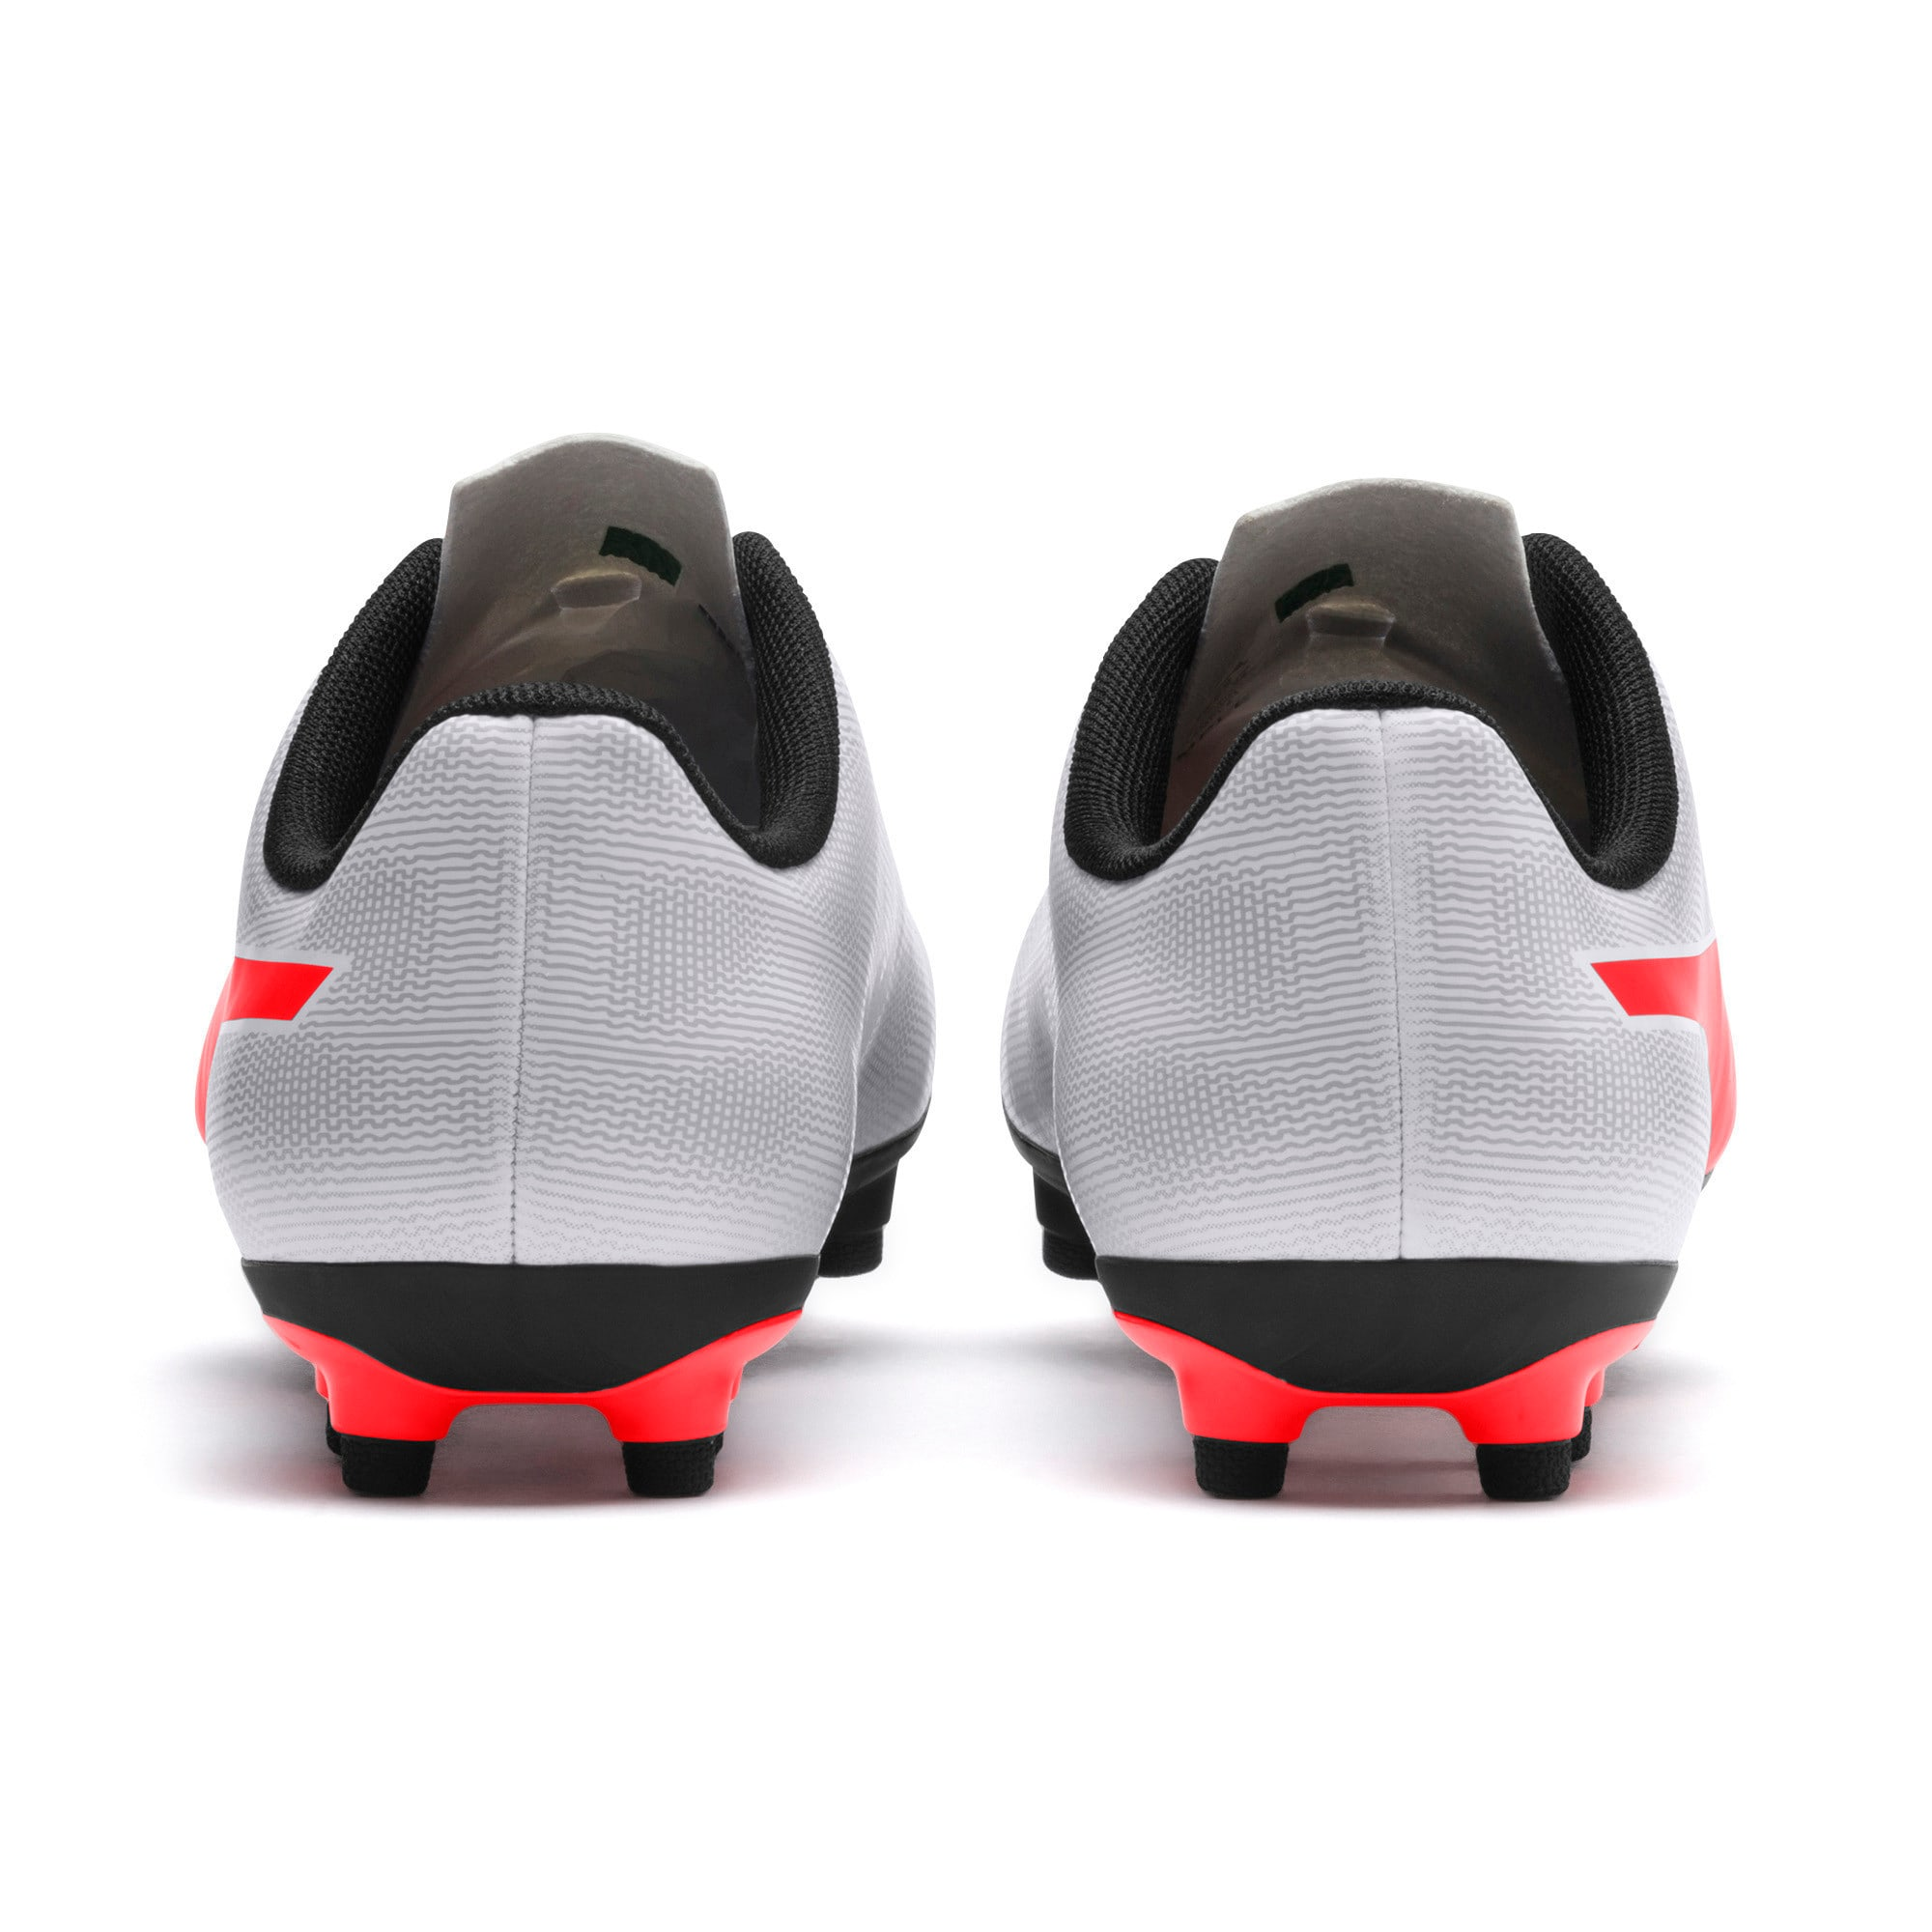 Thumbnail 3 of Rapido FG Youth Football Boots, White-Gray-Black-Red Blast, medium-IND